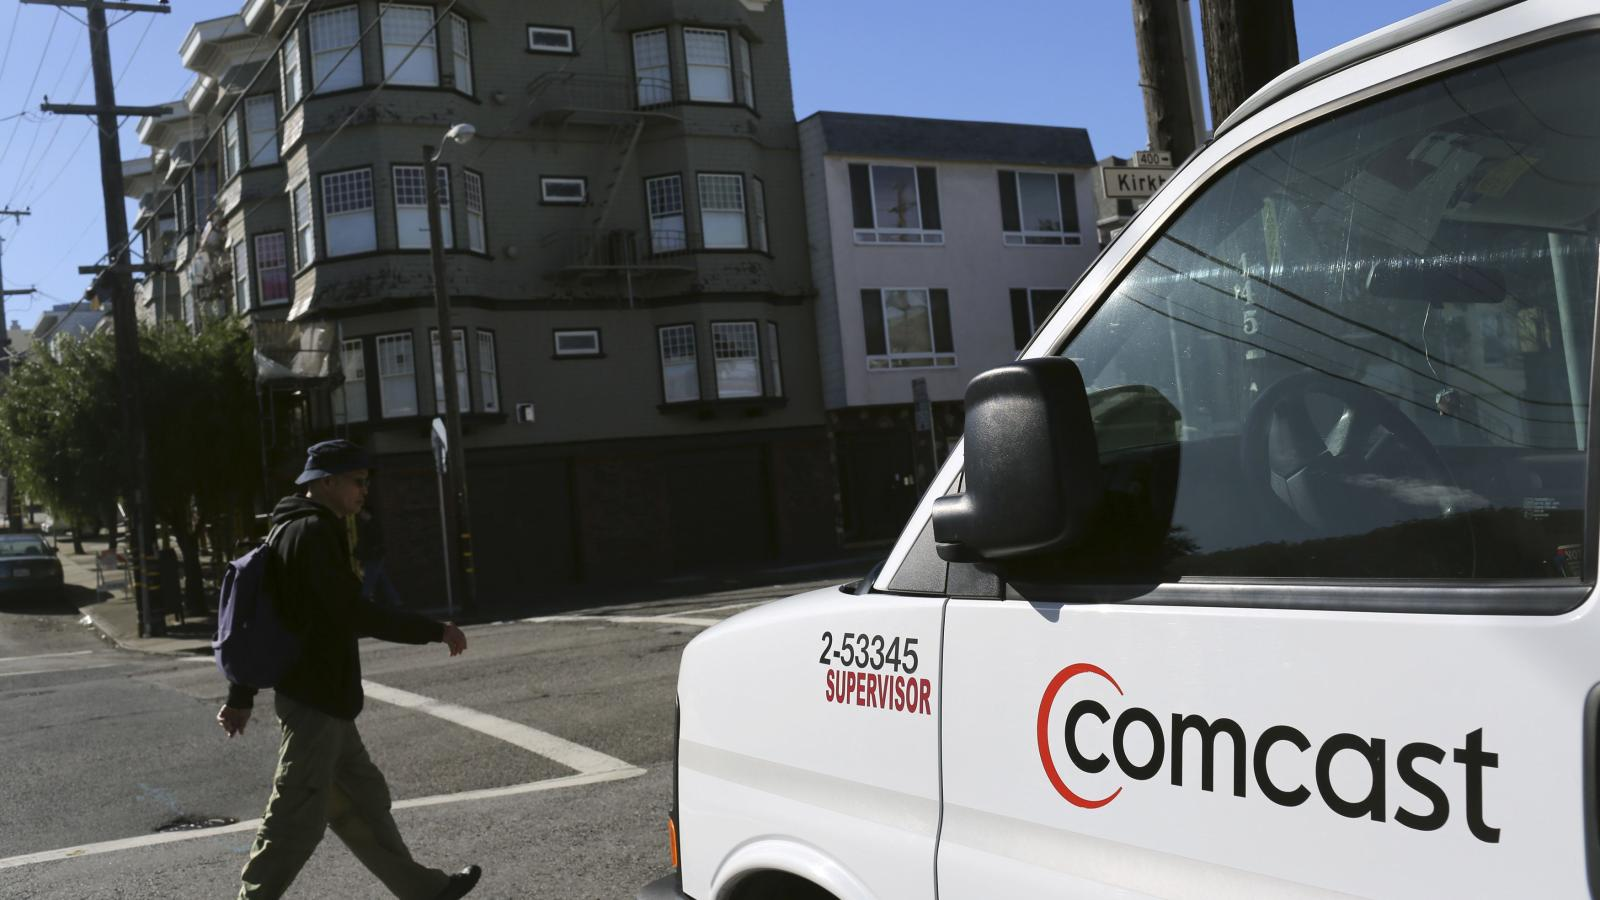 Comcast Is Being Sued By The Washington Attorney General For Its Xfinity Home Wiring Near Worthless Service Plans Quartz